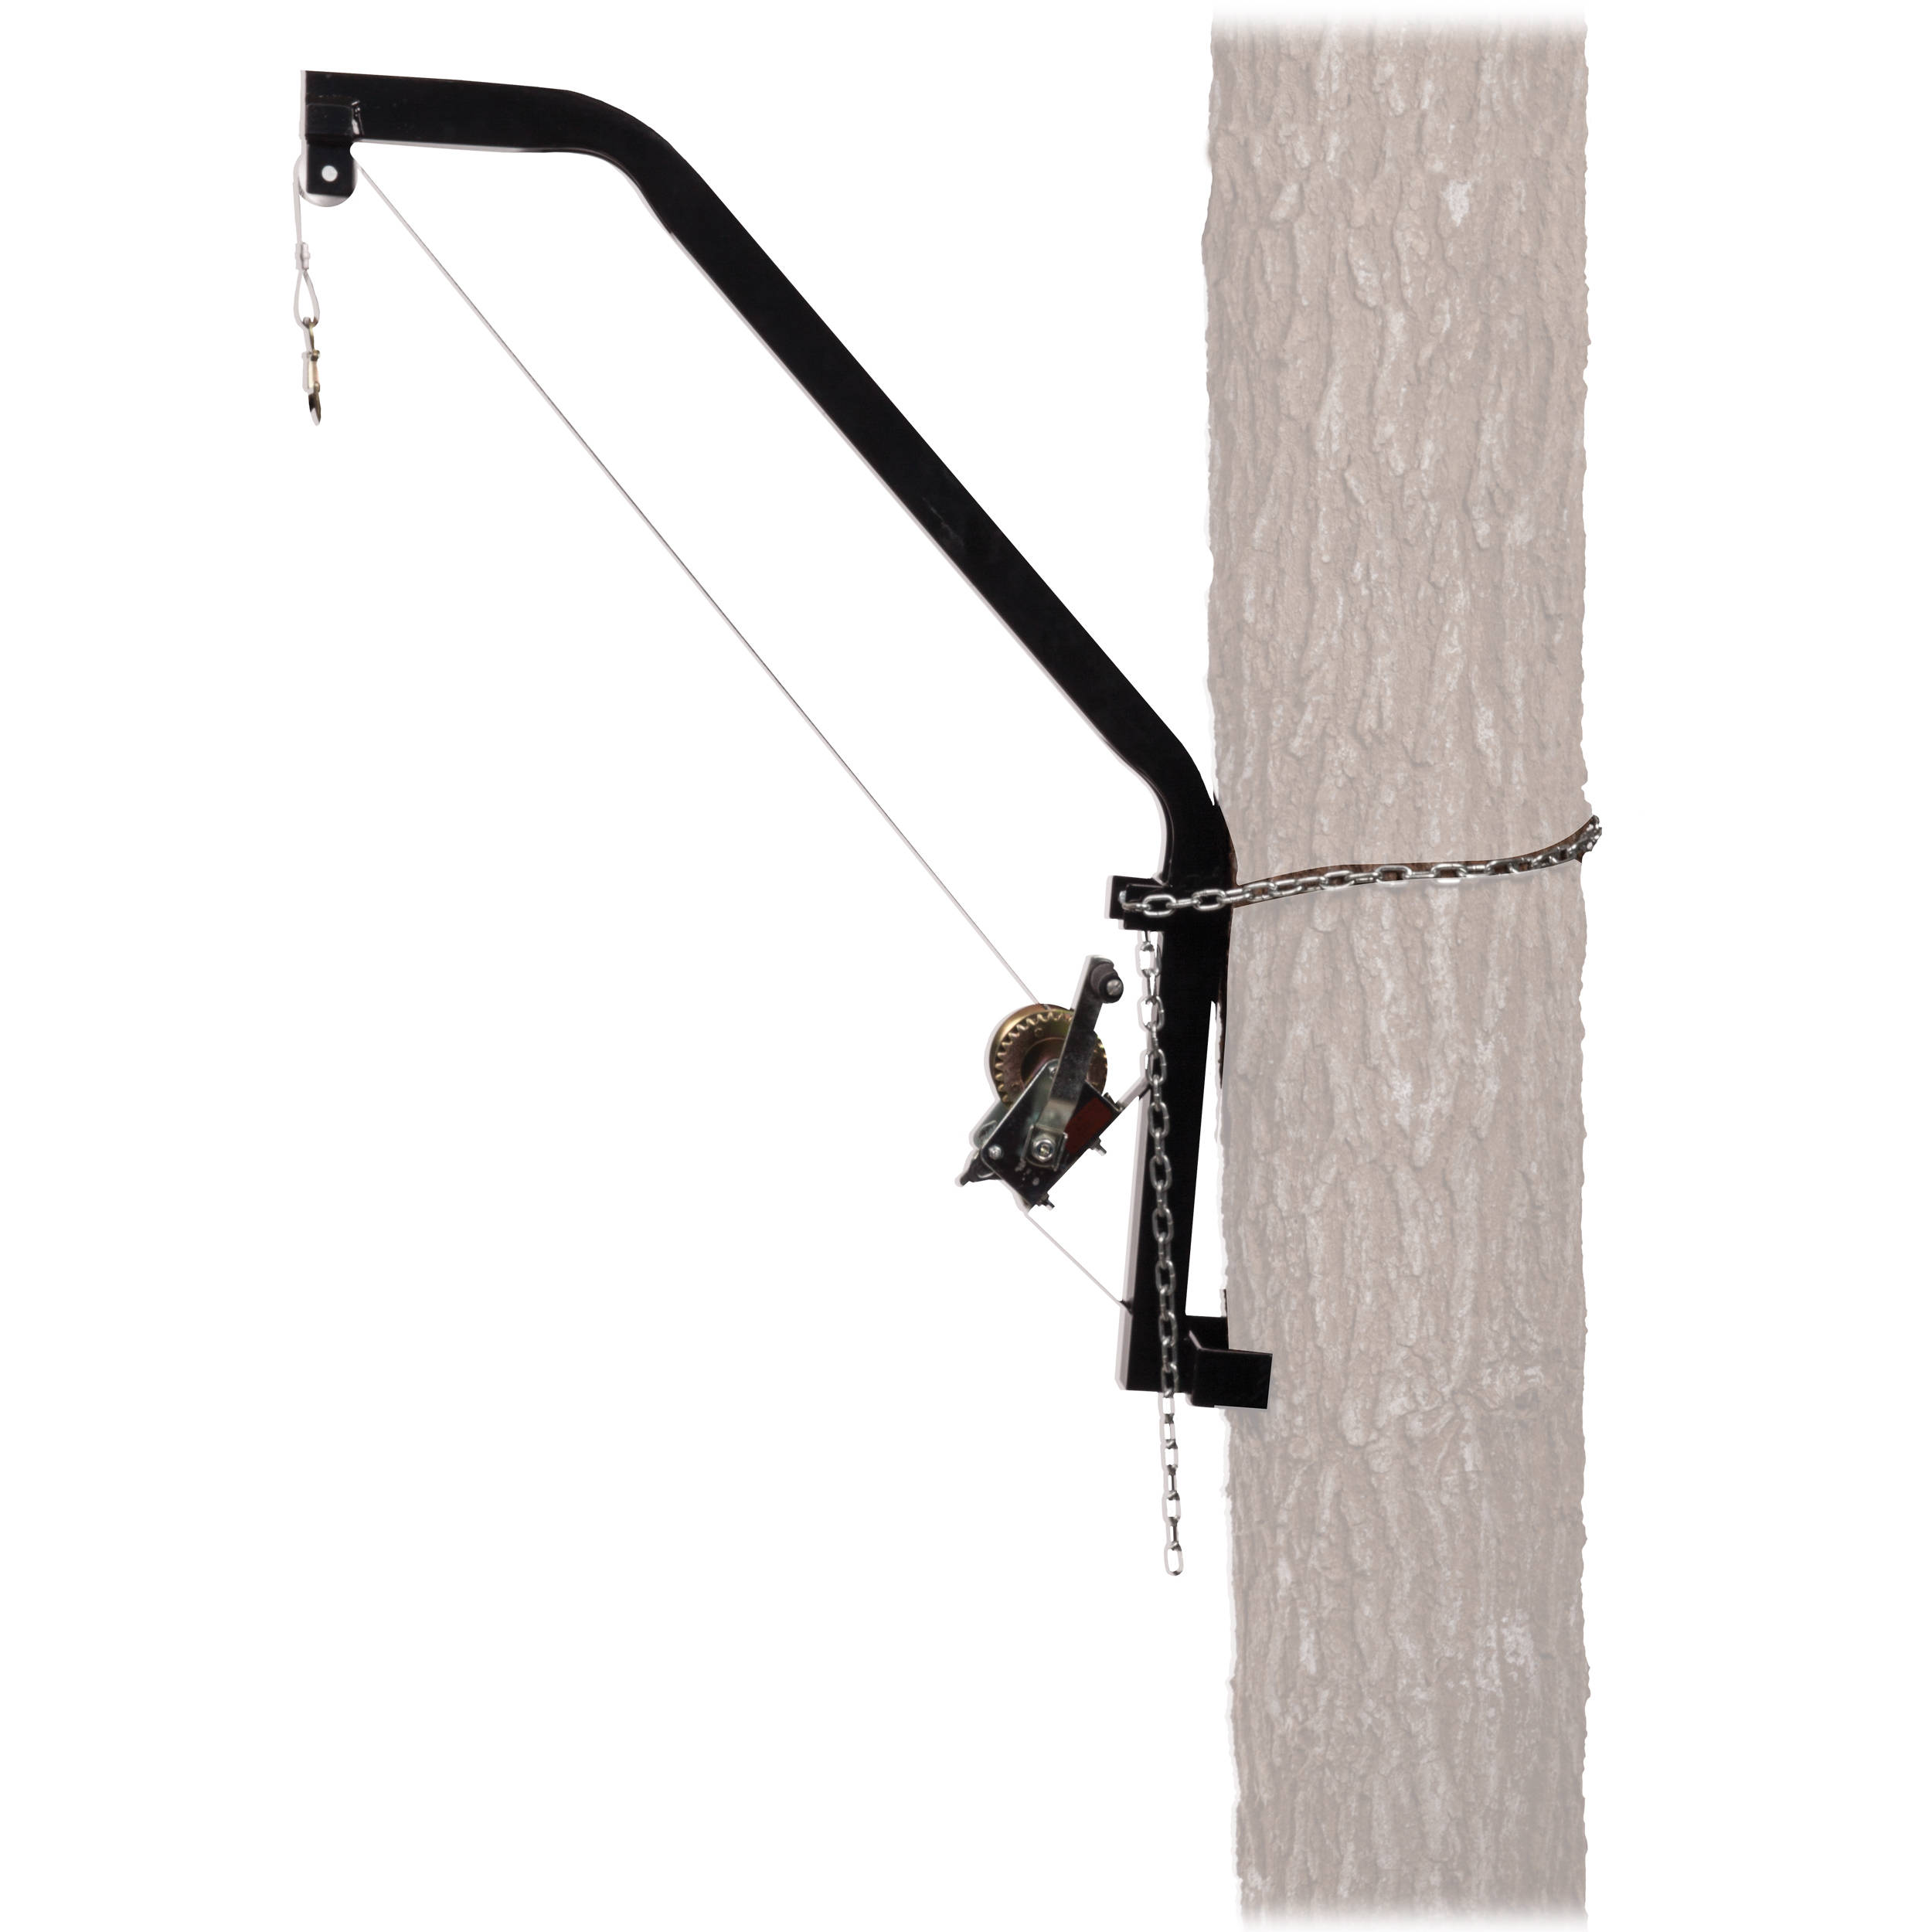 moultrie hanging feeder hoist mfa 13102 b h photo video rh bhphotovideo com Texas Deer Feeders Texas Deer Feeders